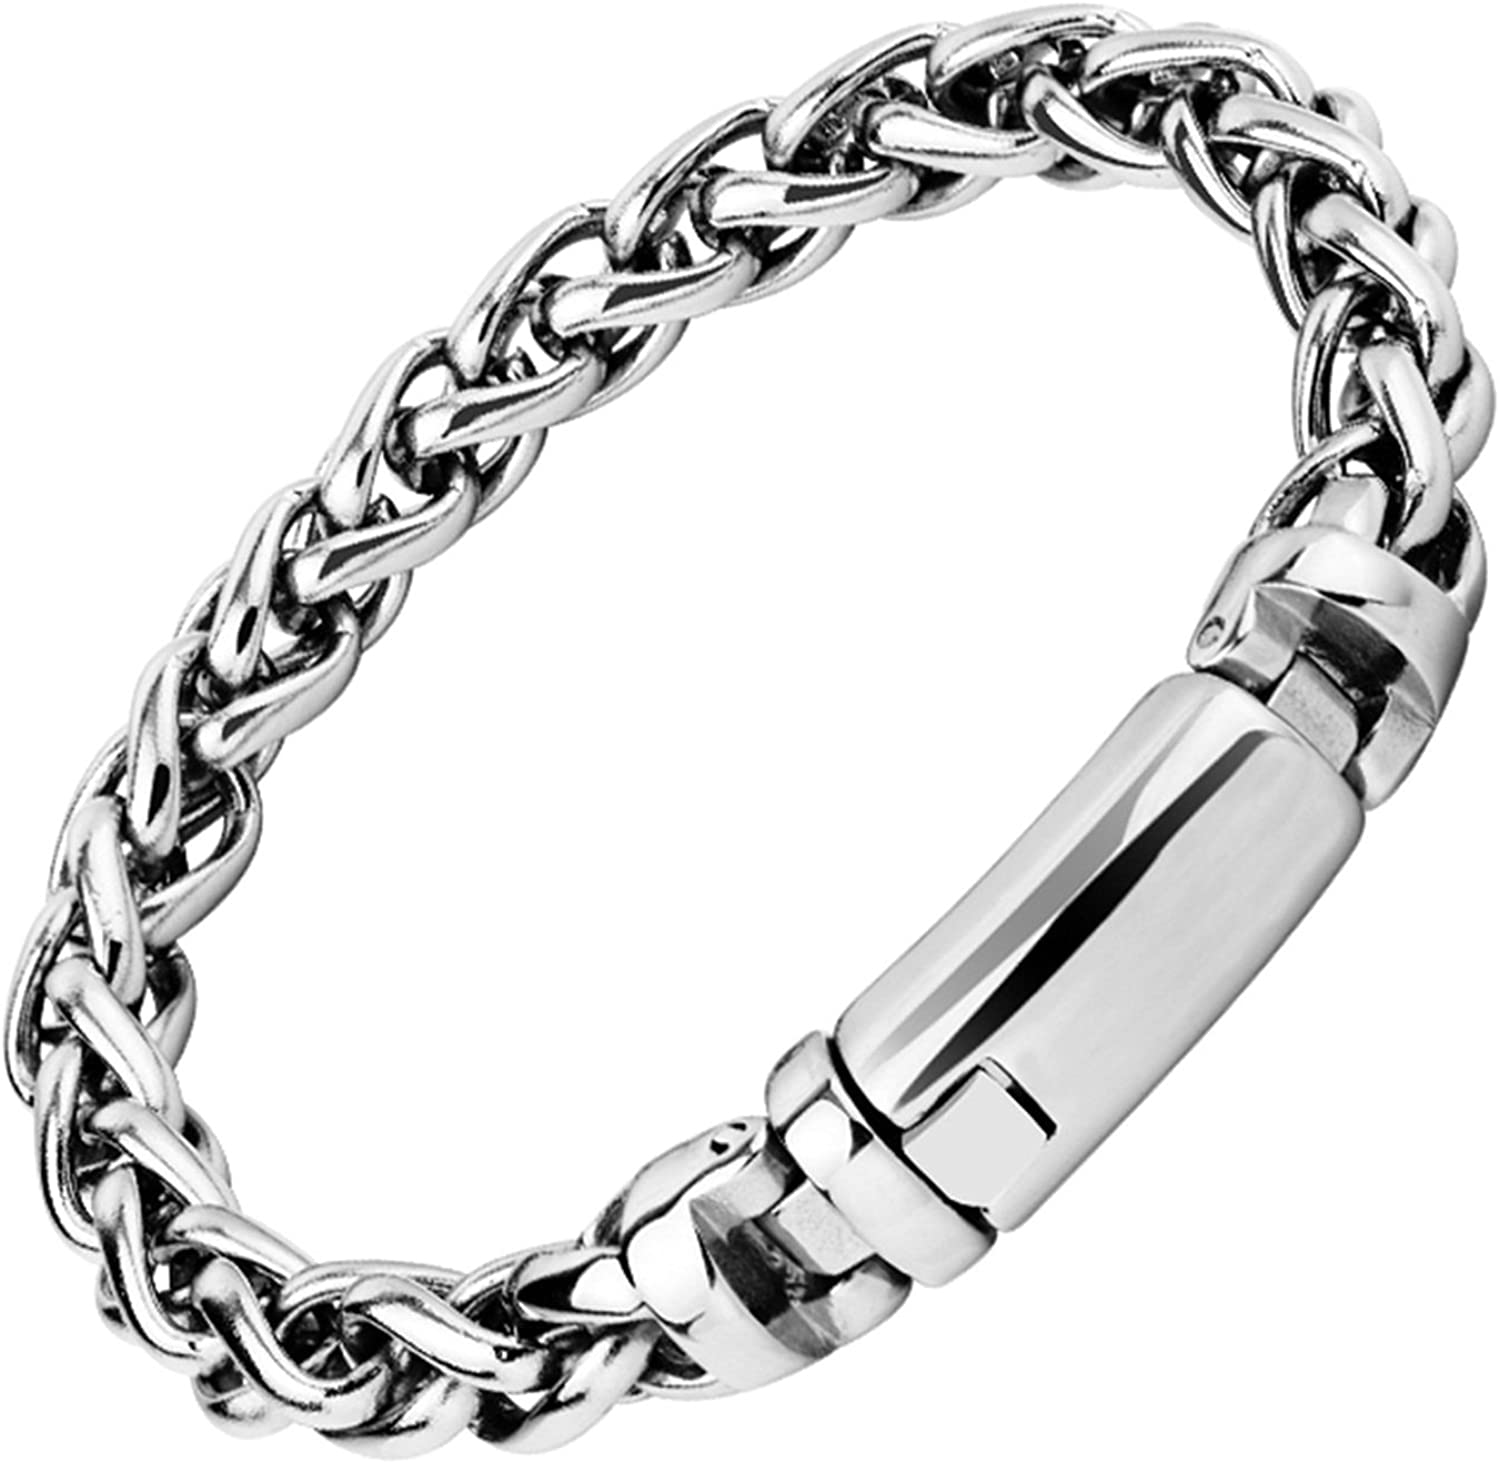 Gnzoe Stainless Steel Chain Necklace For Men Silver Double Curb Chain Men Chain Necklace Necklaces